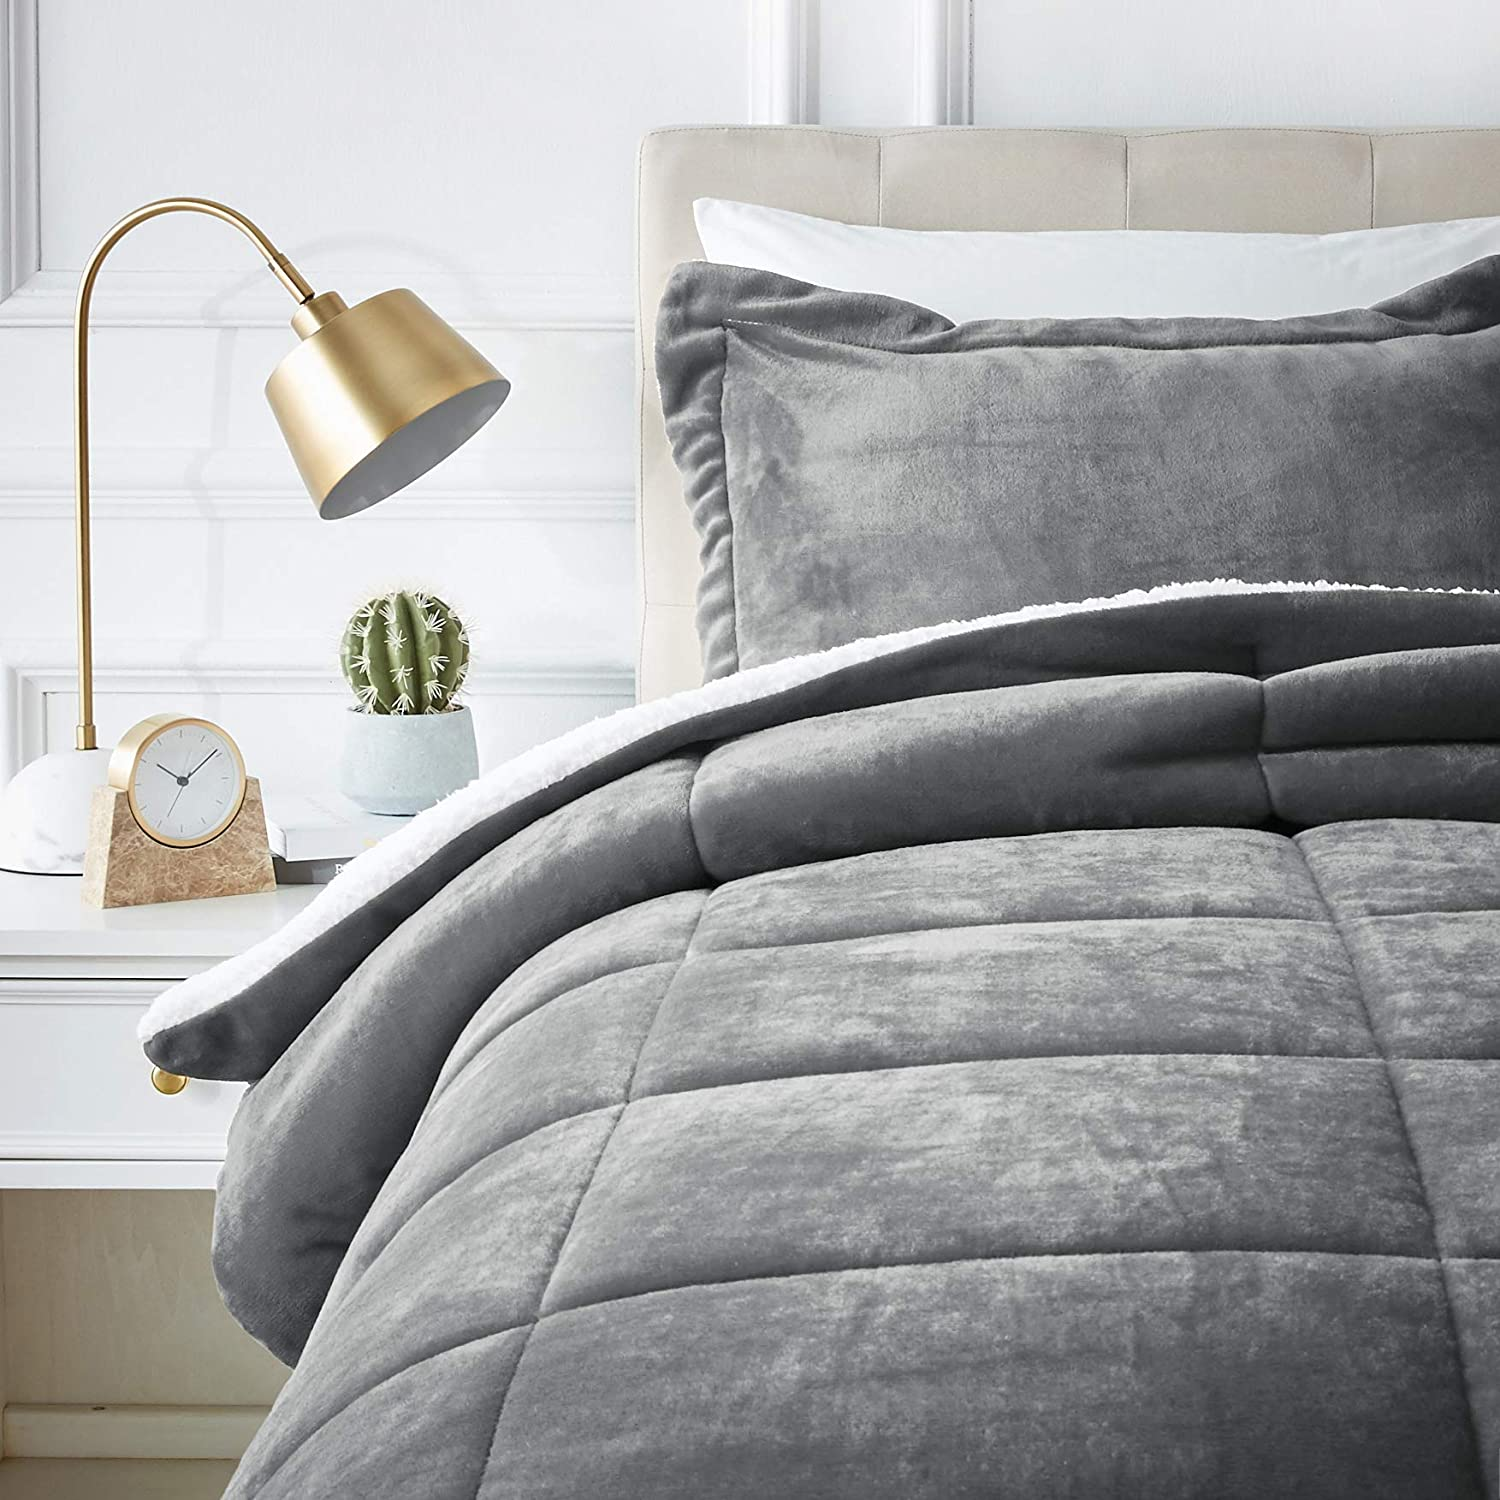 Soft Micromink Sherpa Comforter Bed Set - Twin, Charcoal